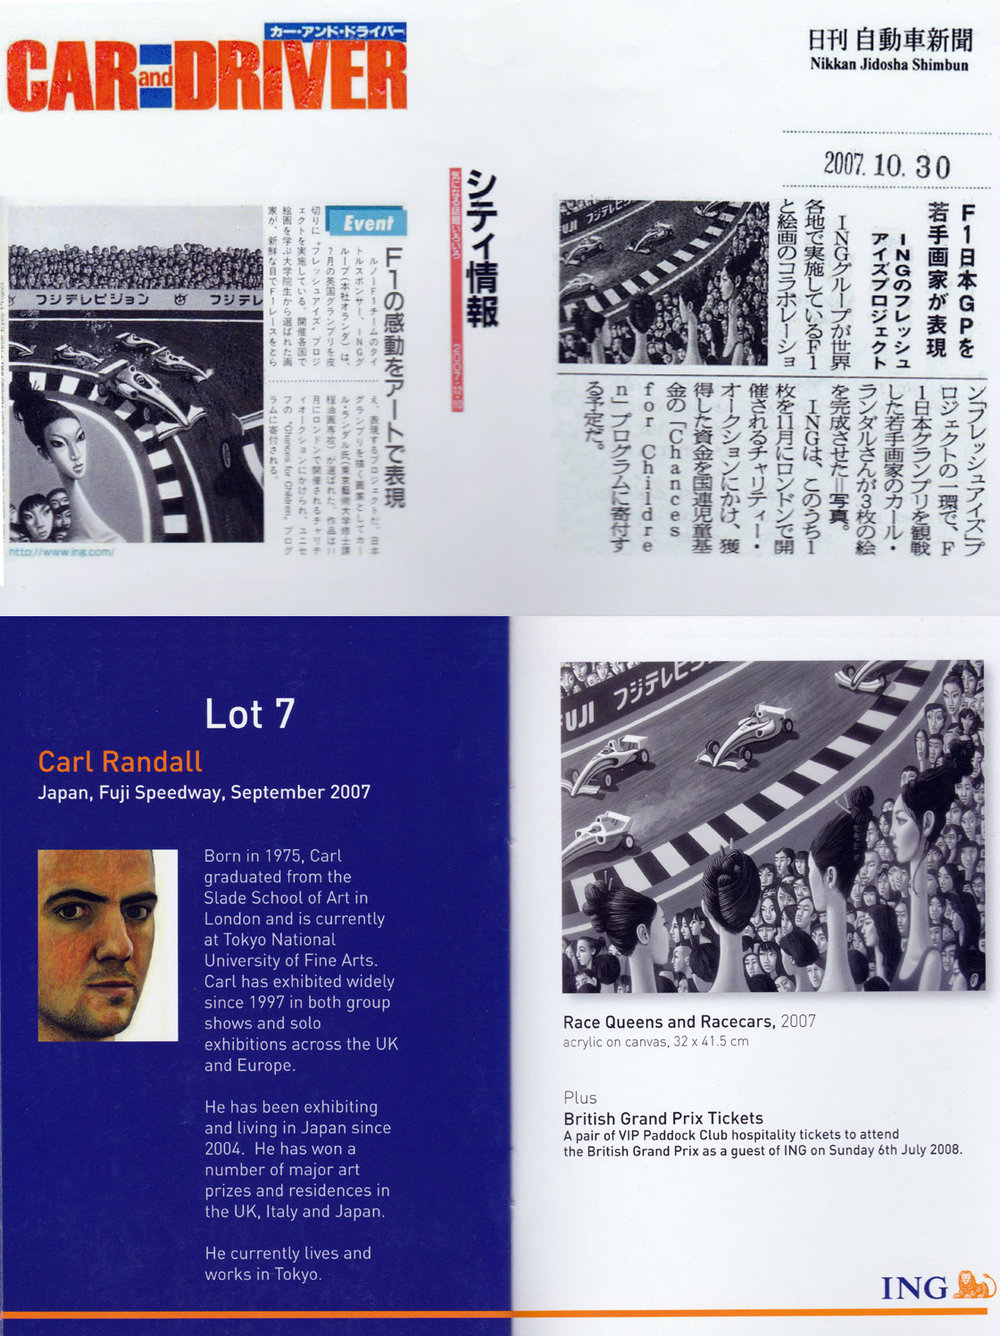 carl-randall-exhibition-japanese-car-driver-mag.jpg